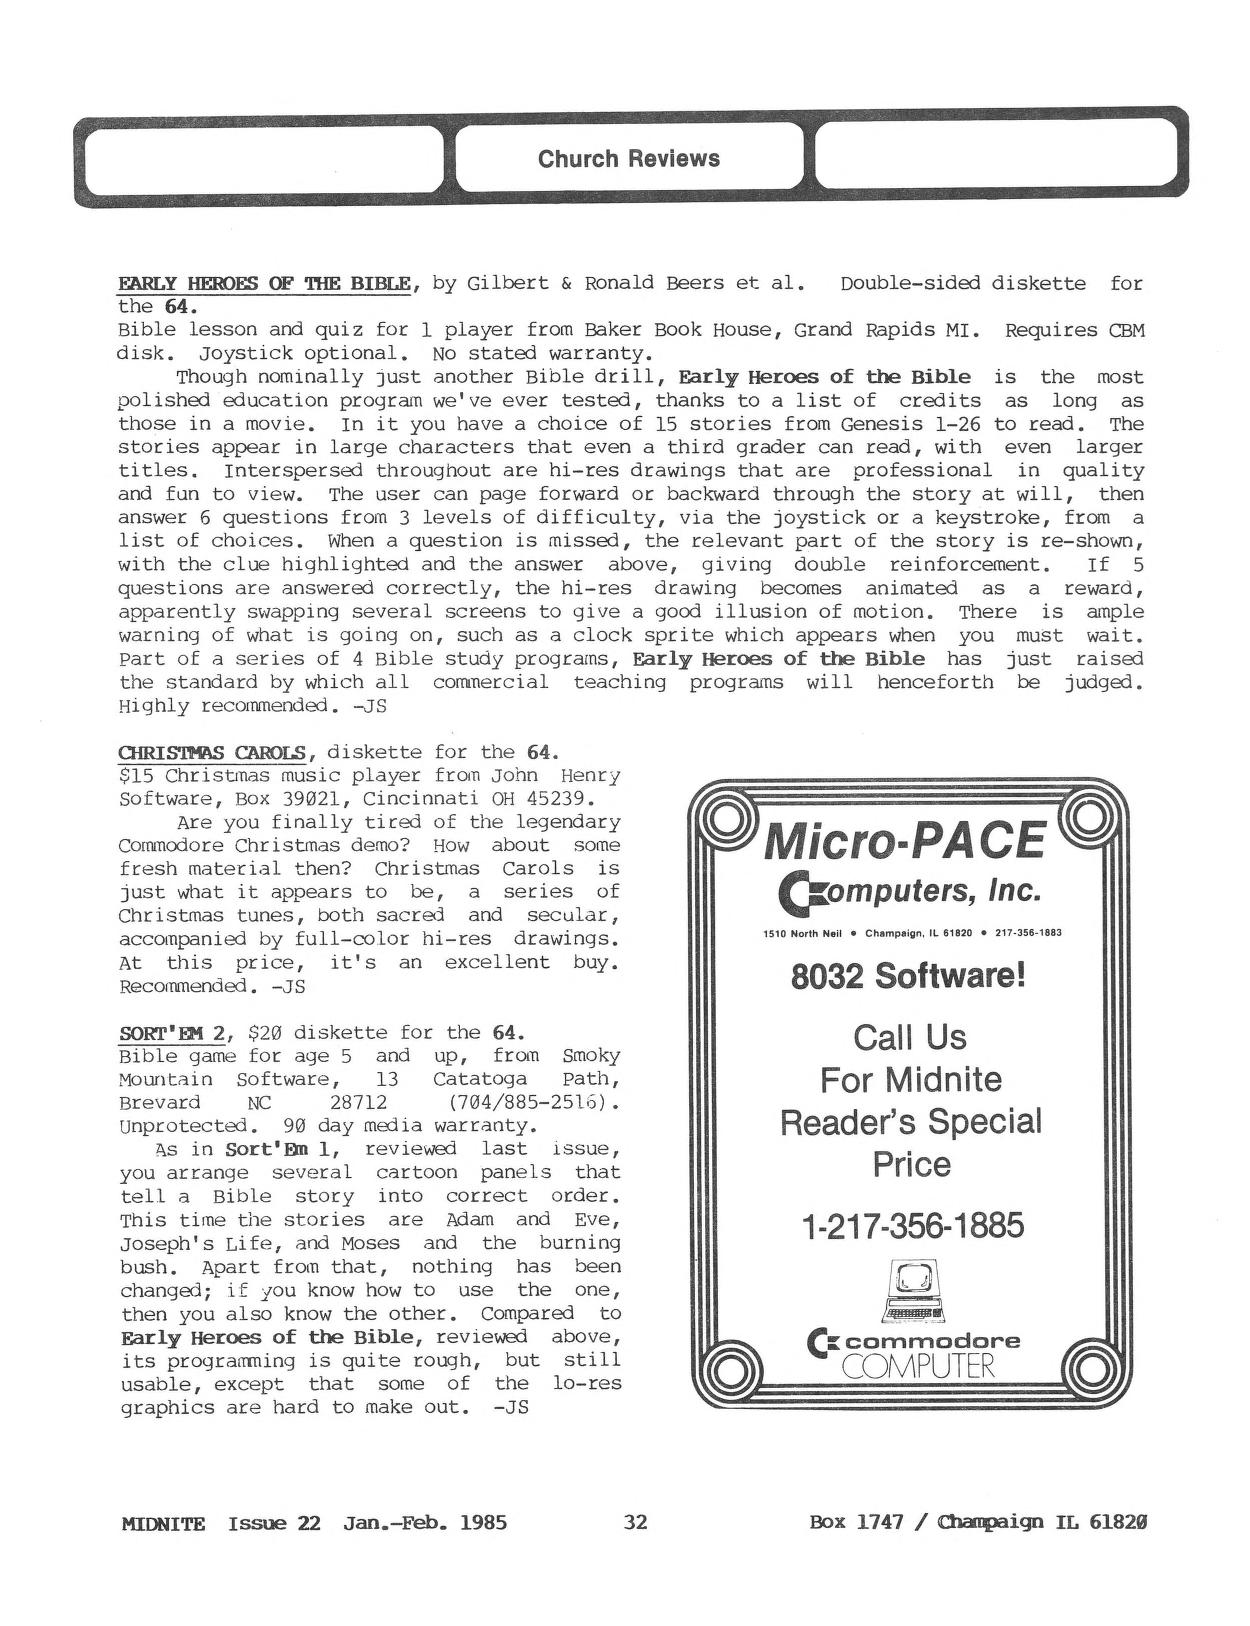 Midnite_Software_Gazette_22_0033